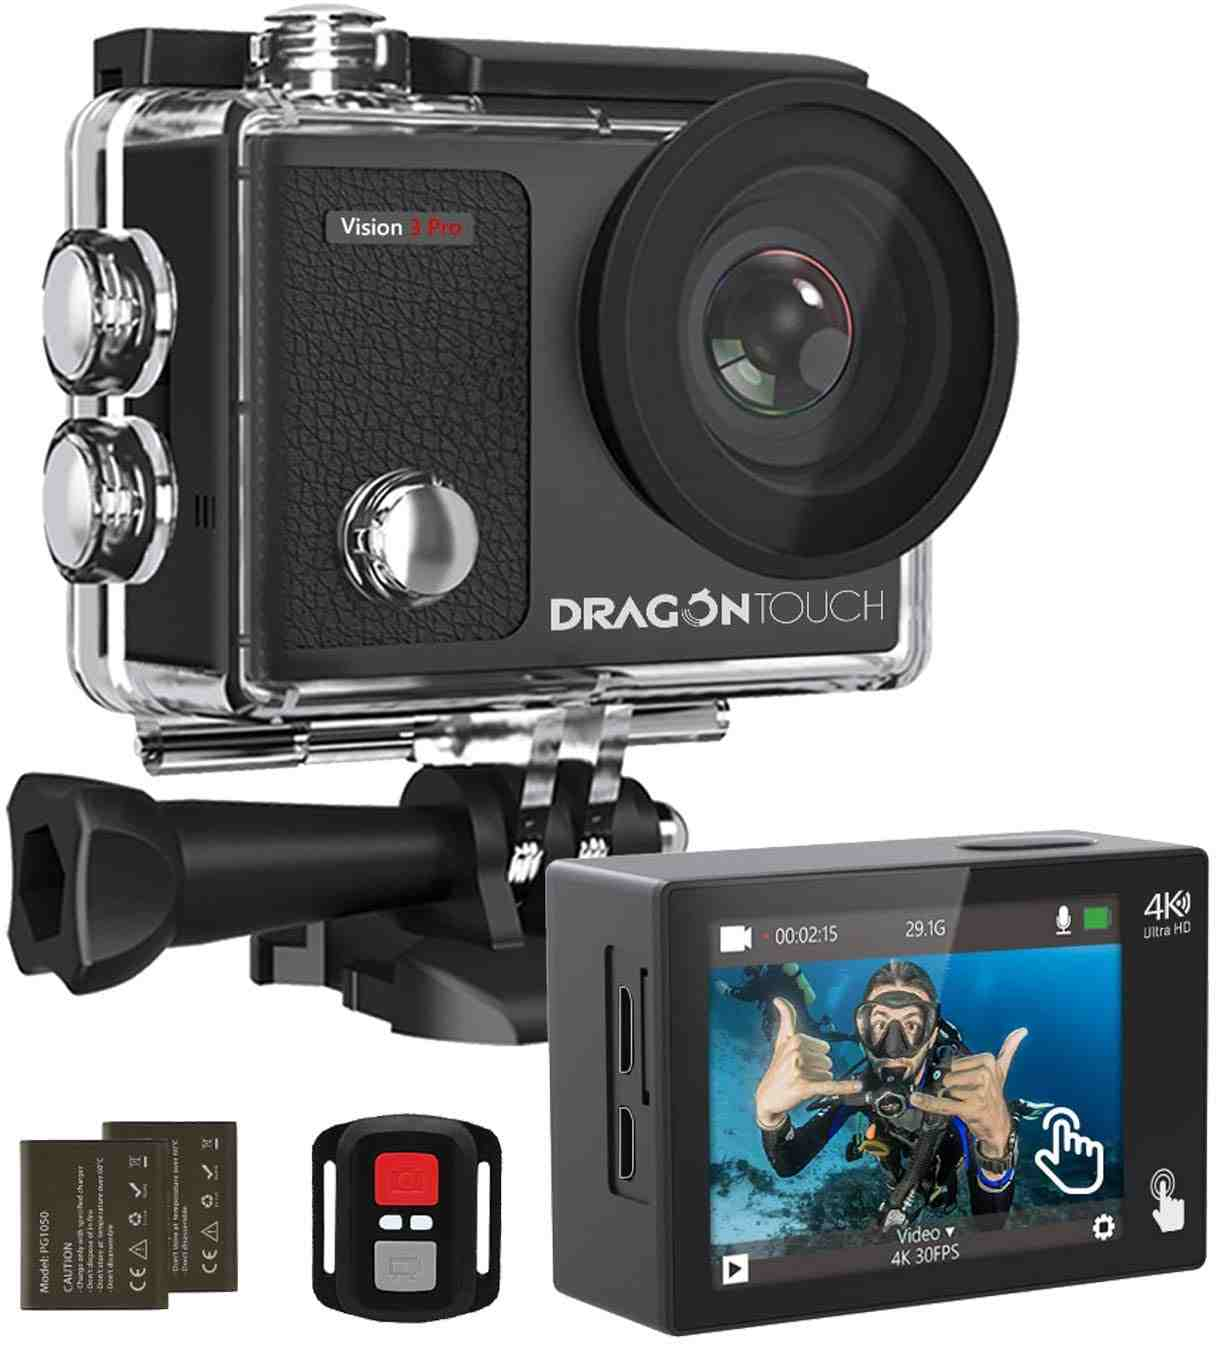 Dragon Touch - best helmet cam for motorcycles